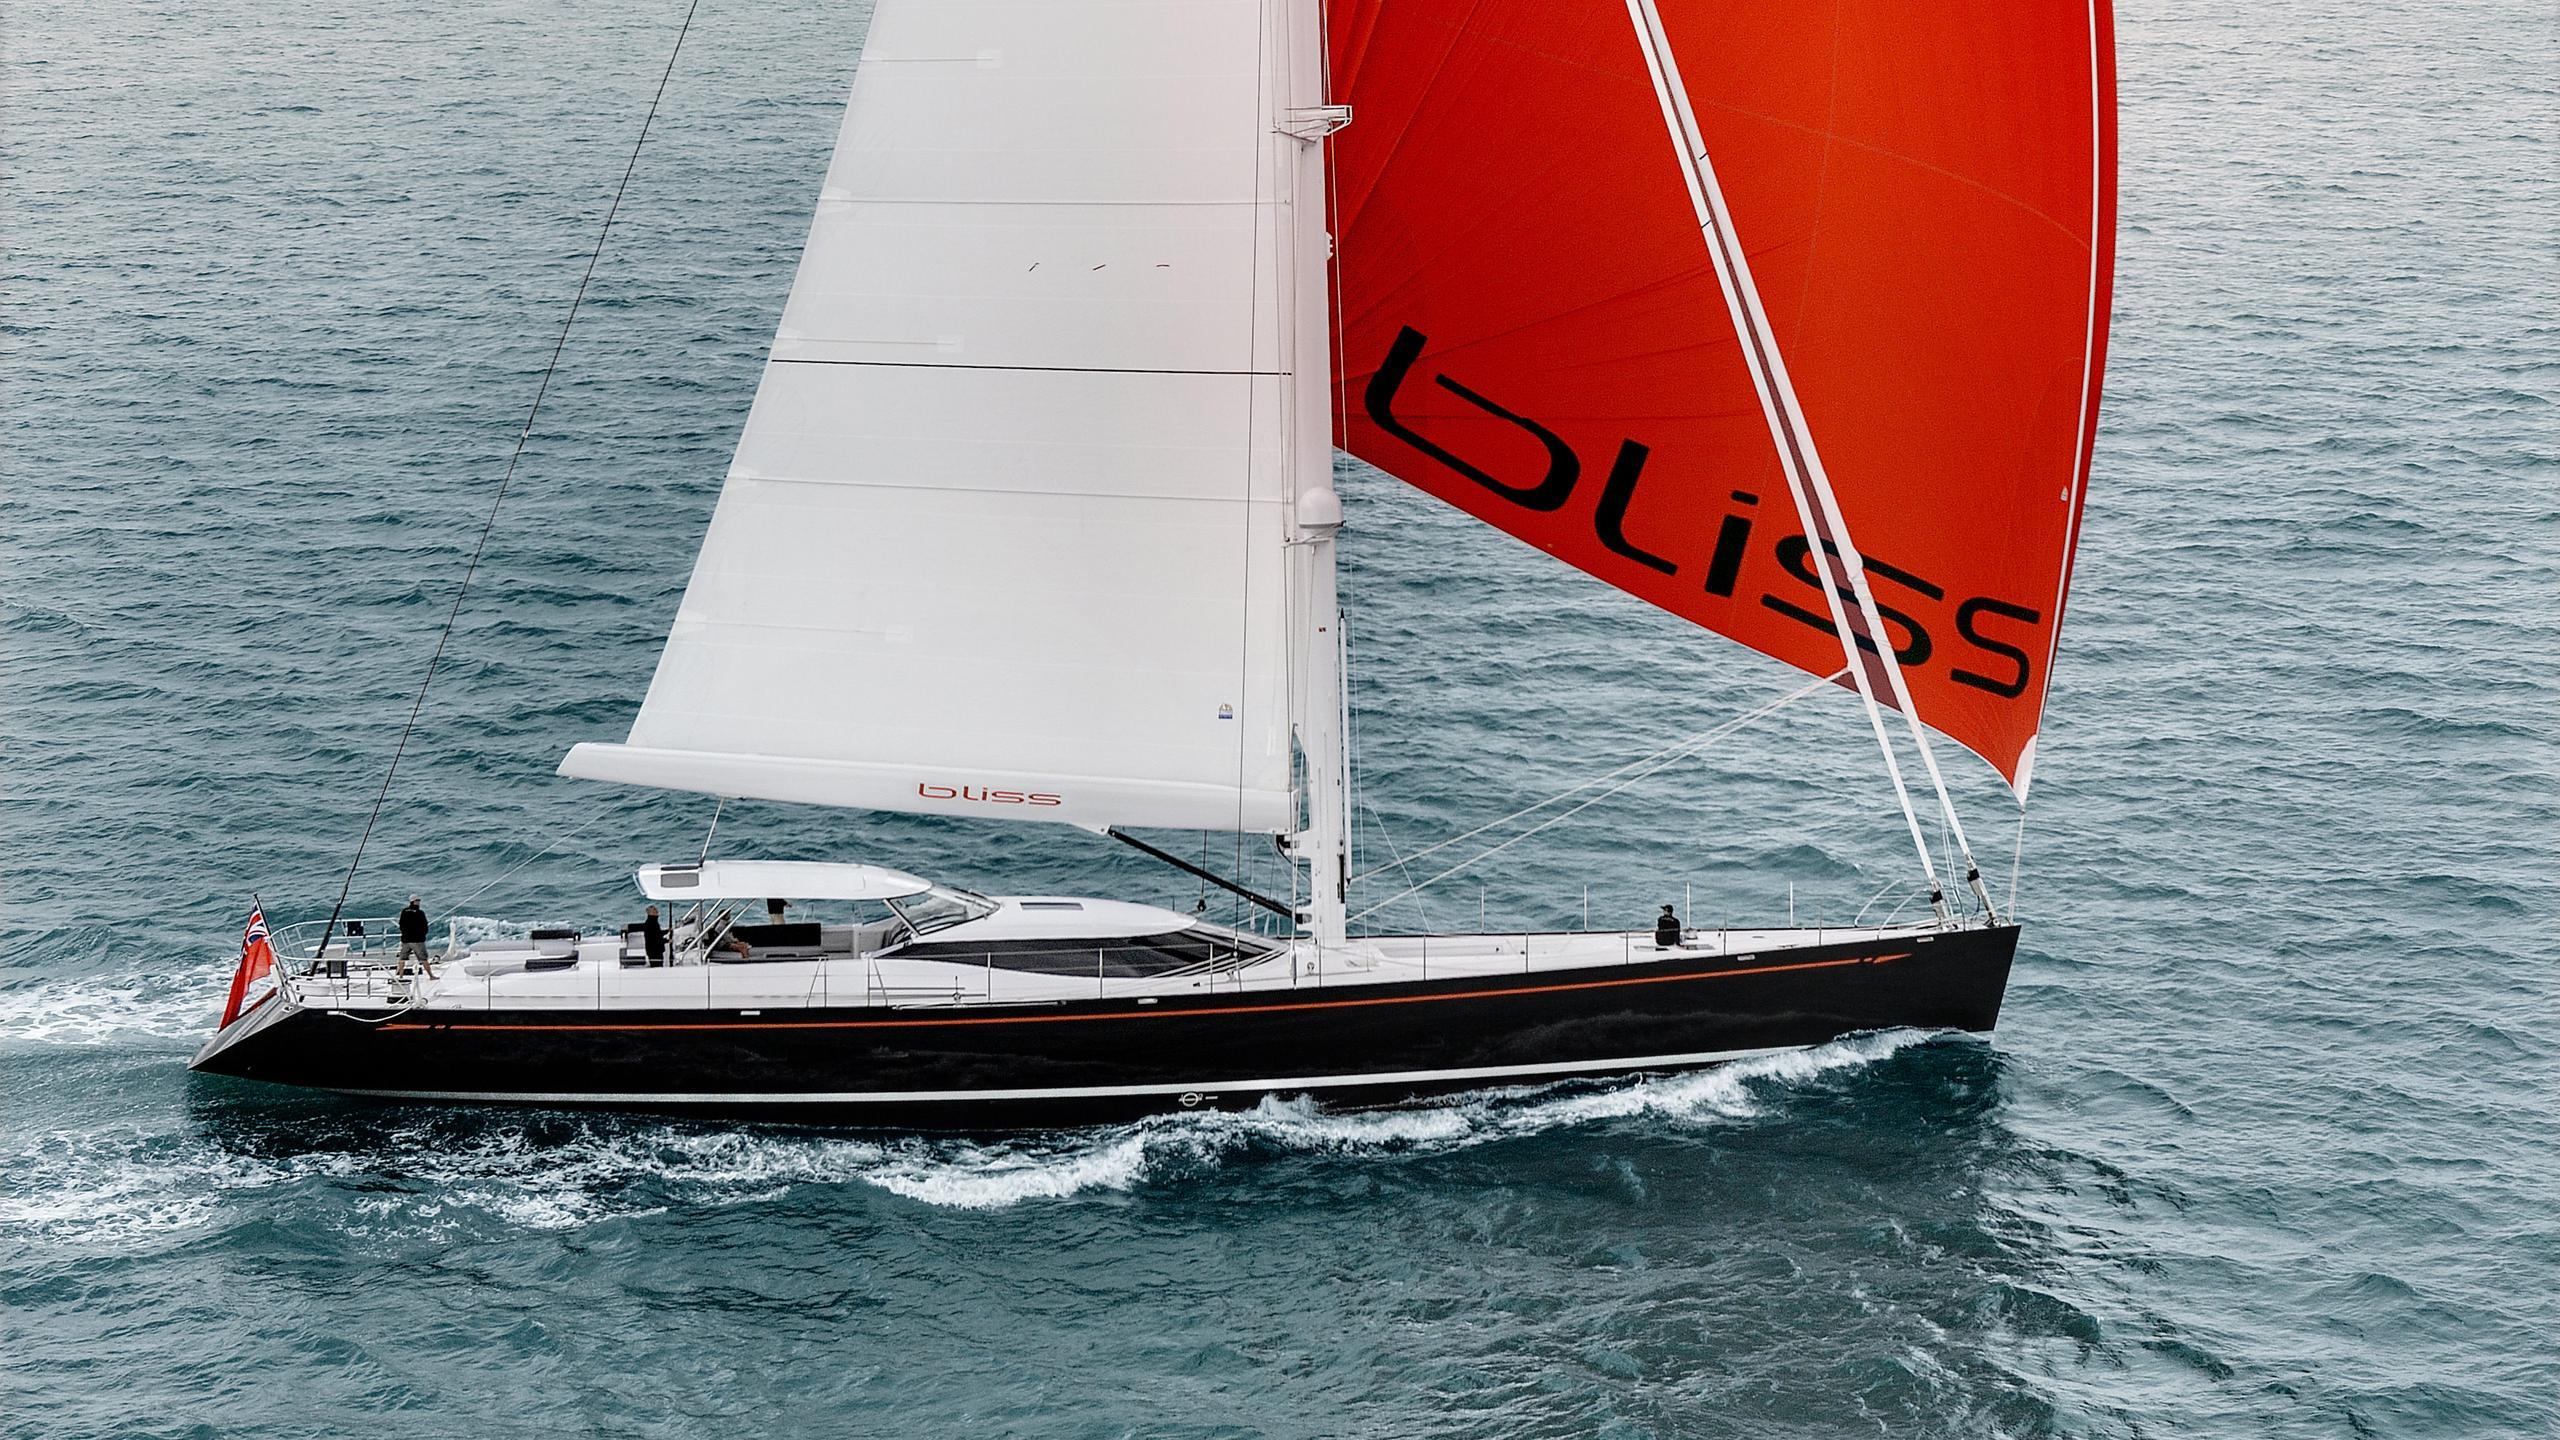 bliss-yacht-for-sale-profile